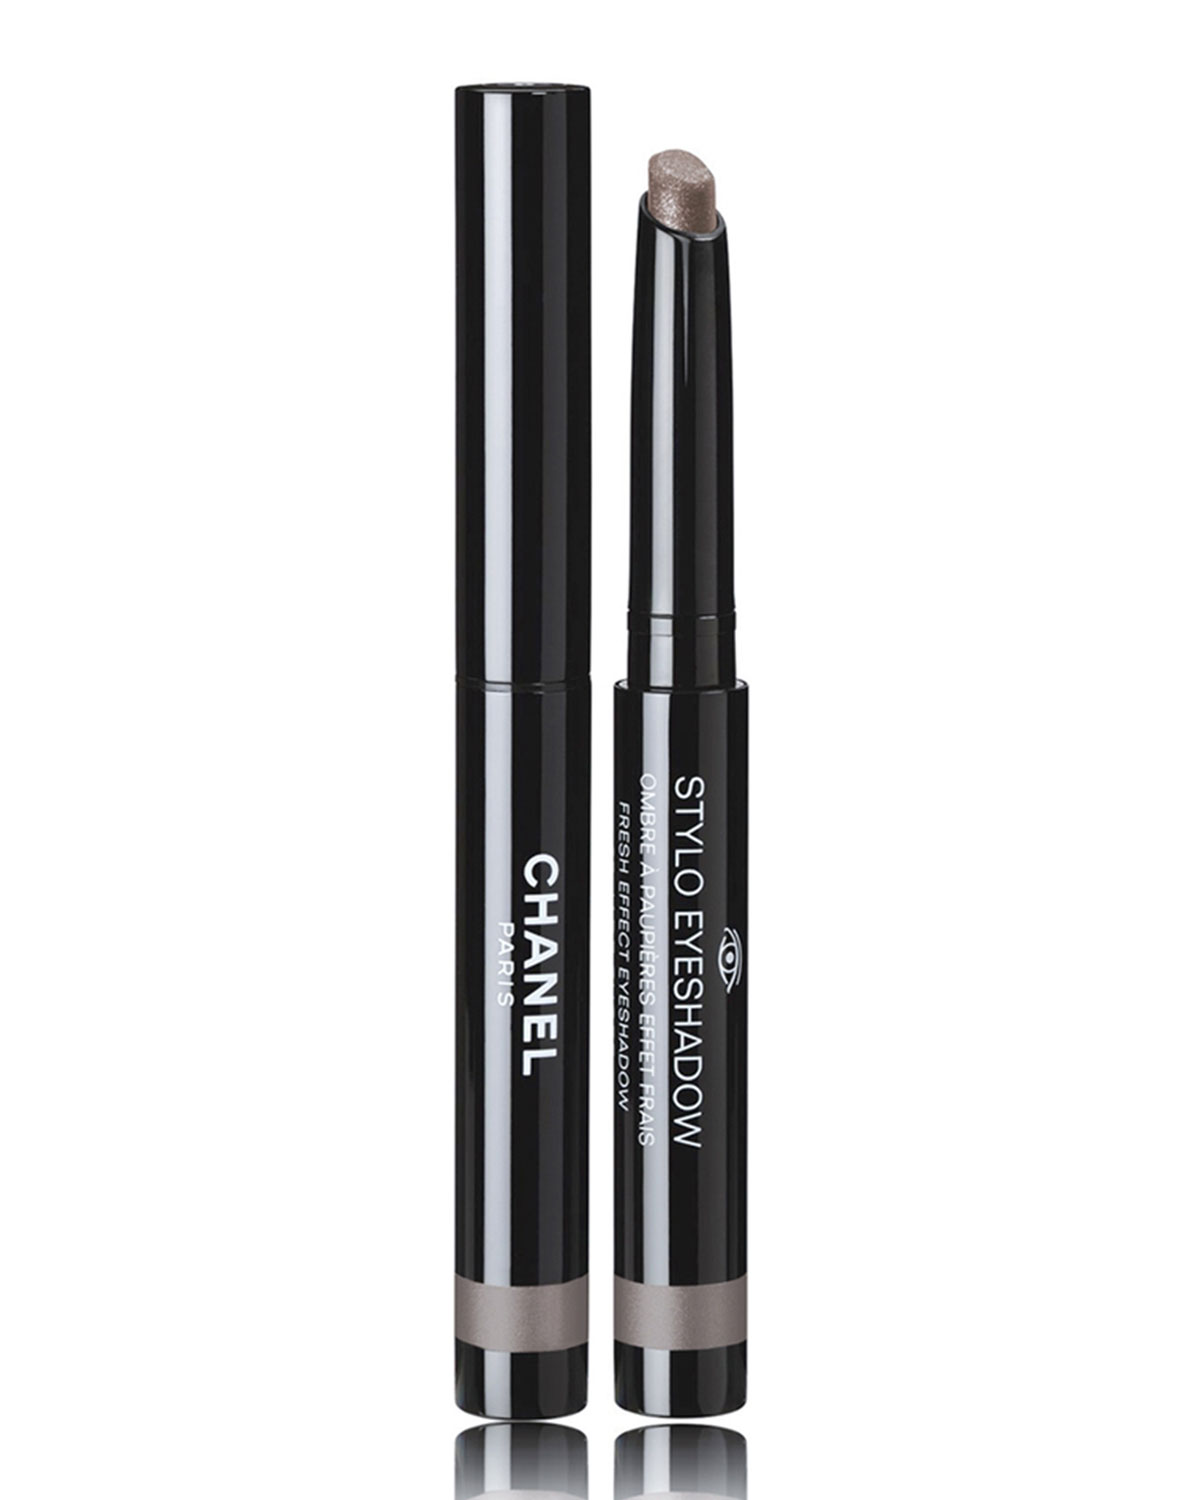 CHANEL <b>STYLO EYESHADOW - COLLECTION MÉDITERRANÉE</b><br>Fresh Effect Eyeshadow - Limited Edition